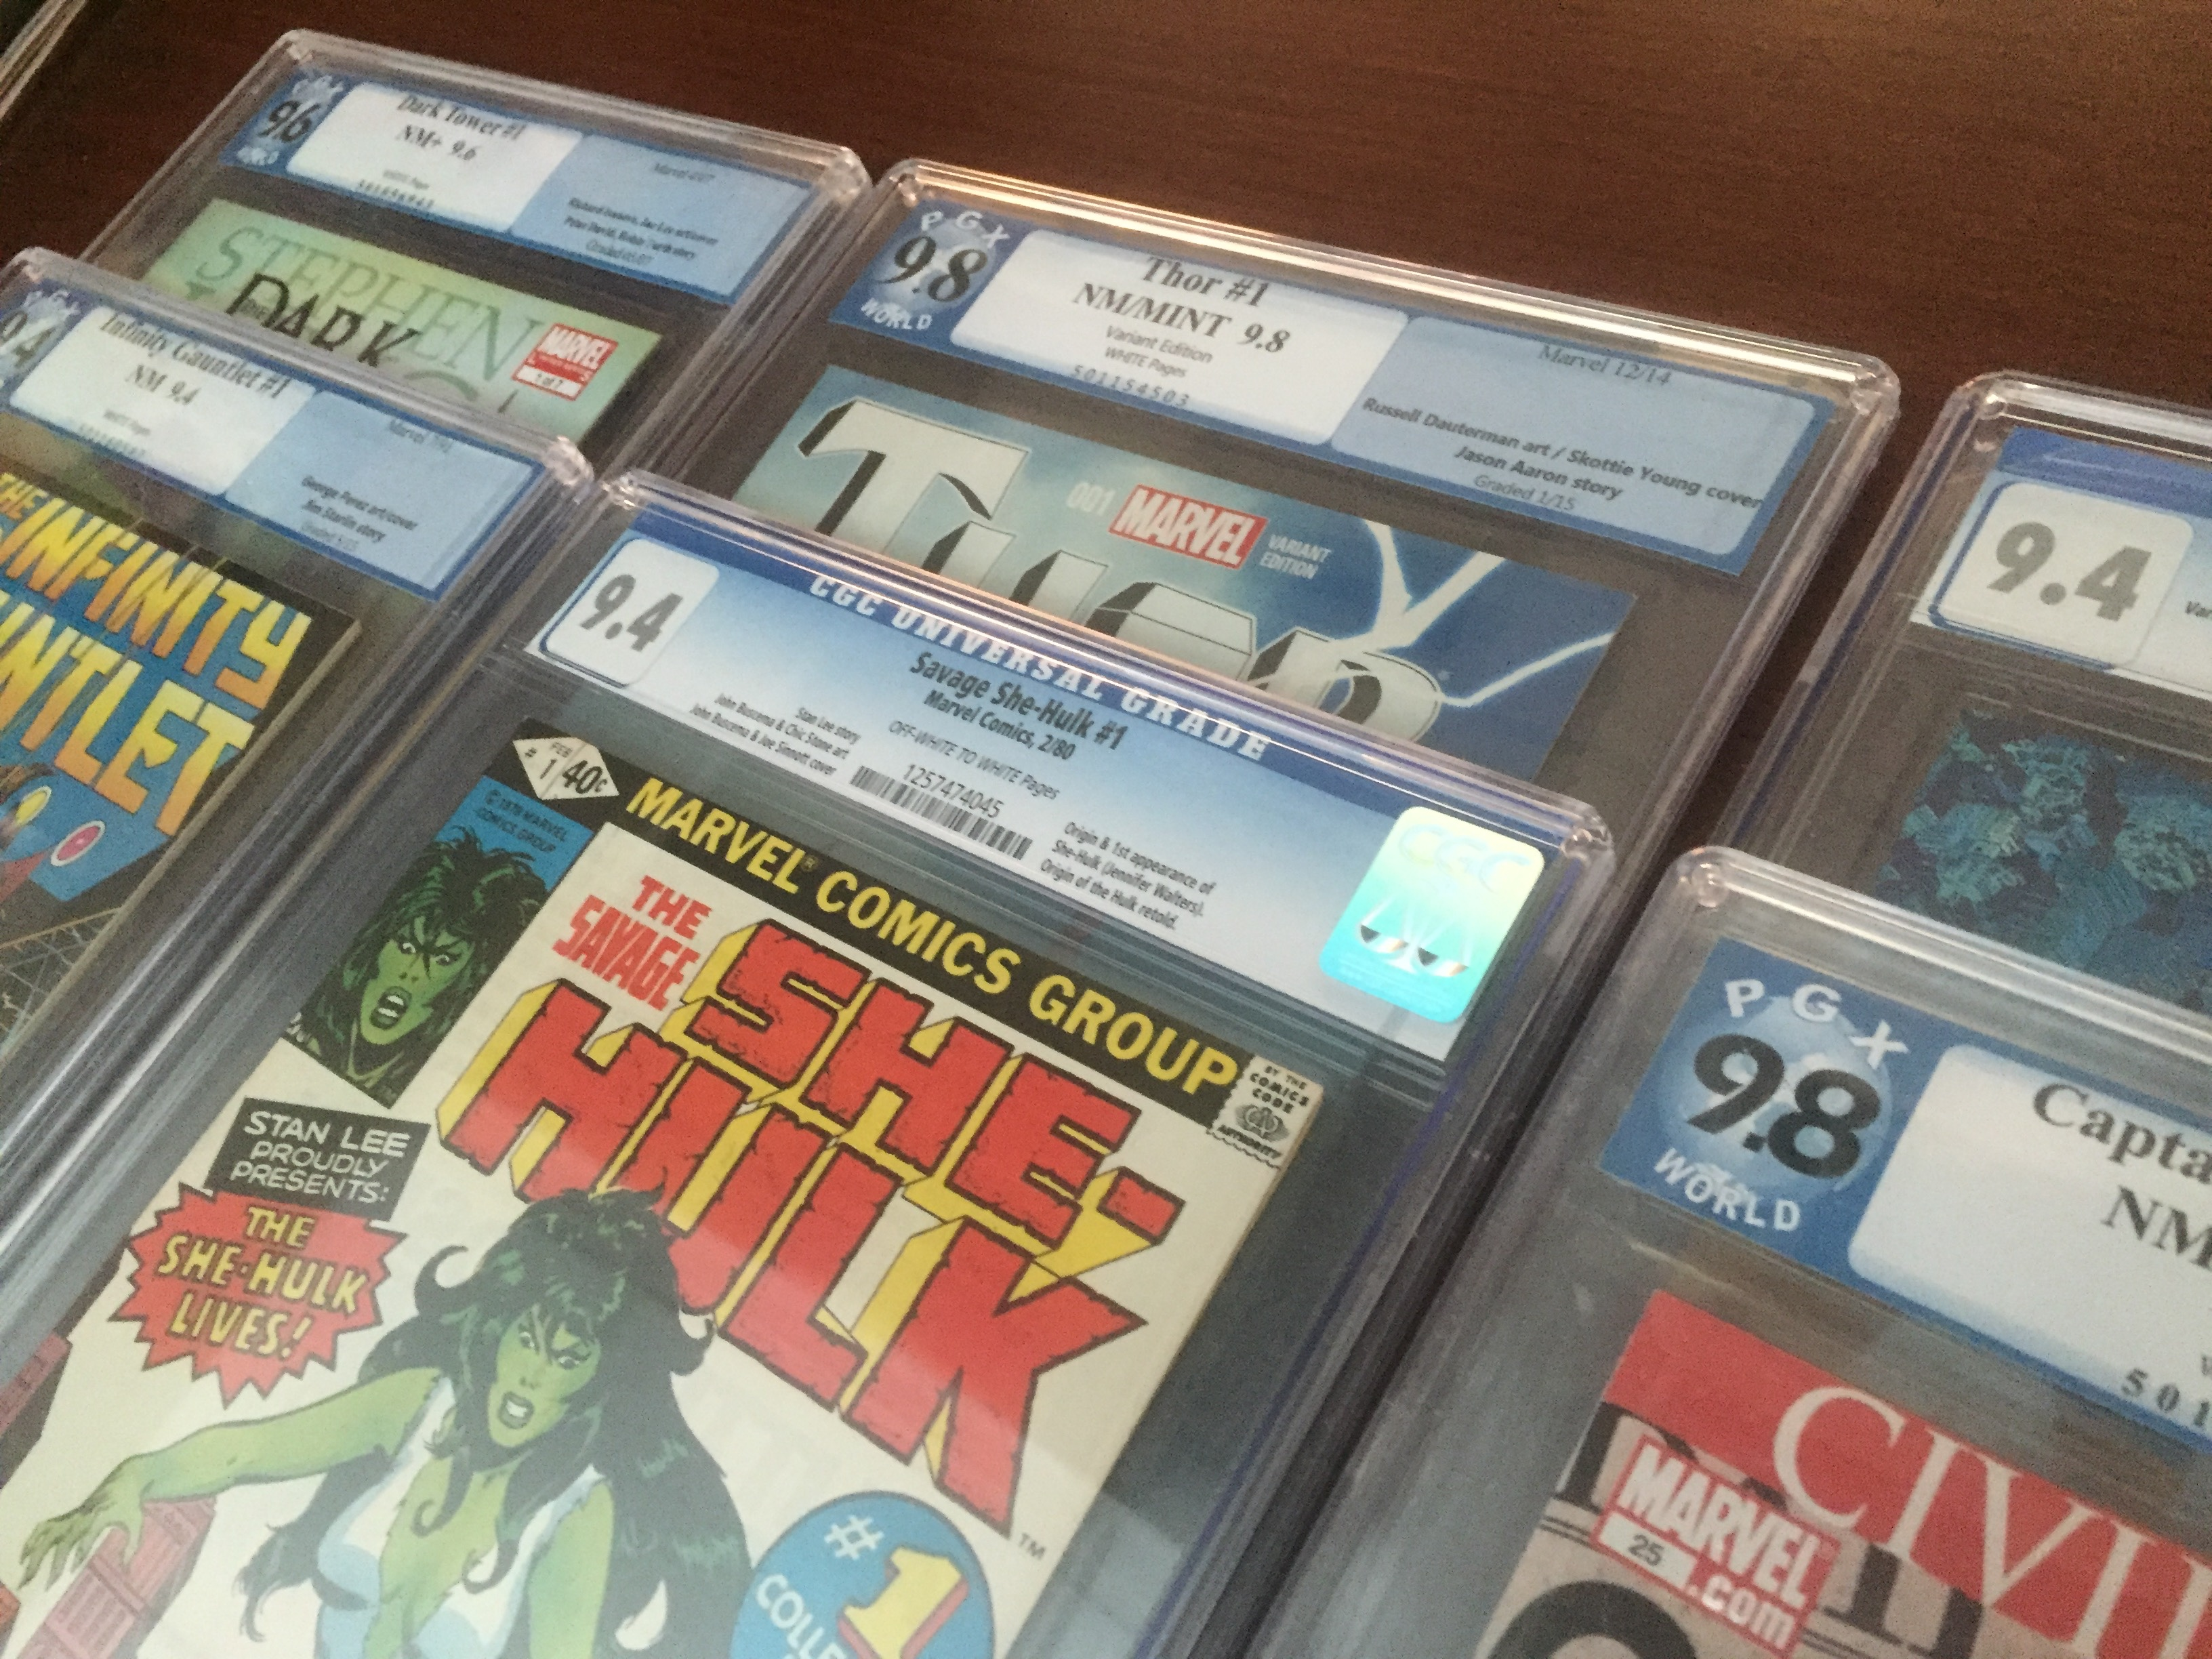 "<span  class=""uc_style_uc_tiles_grid_image_elementor_uc_items_attribute_title"" style=""color:#ffffff;"">CGC, CBCS and PGX Graded Comics at Mammoth Comics</span>"